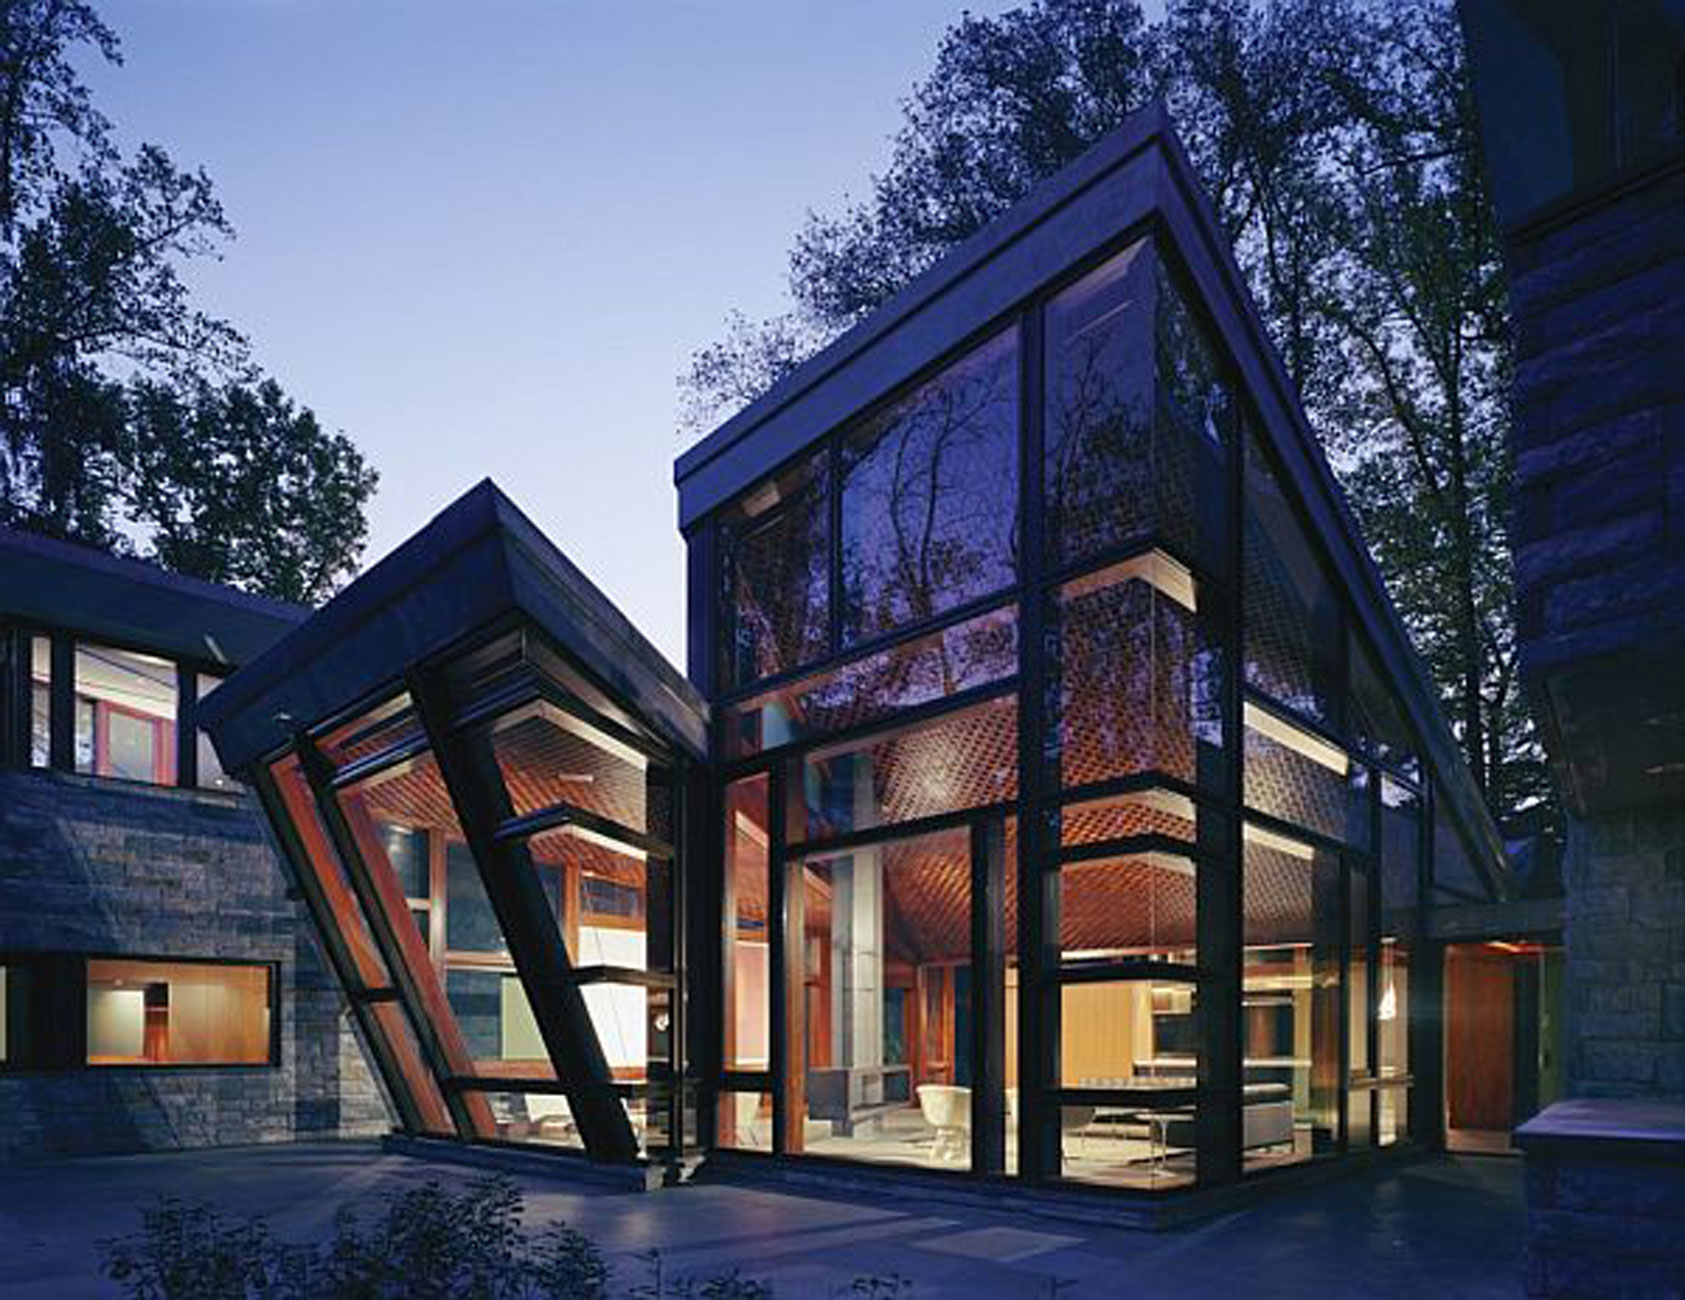 Sunday evening art gallery blog glass houses humoring for Home structure design